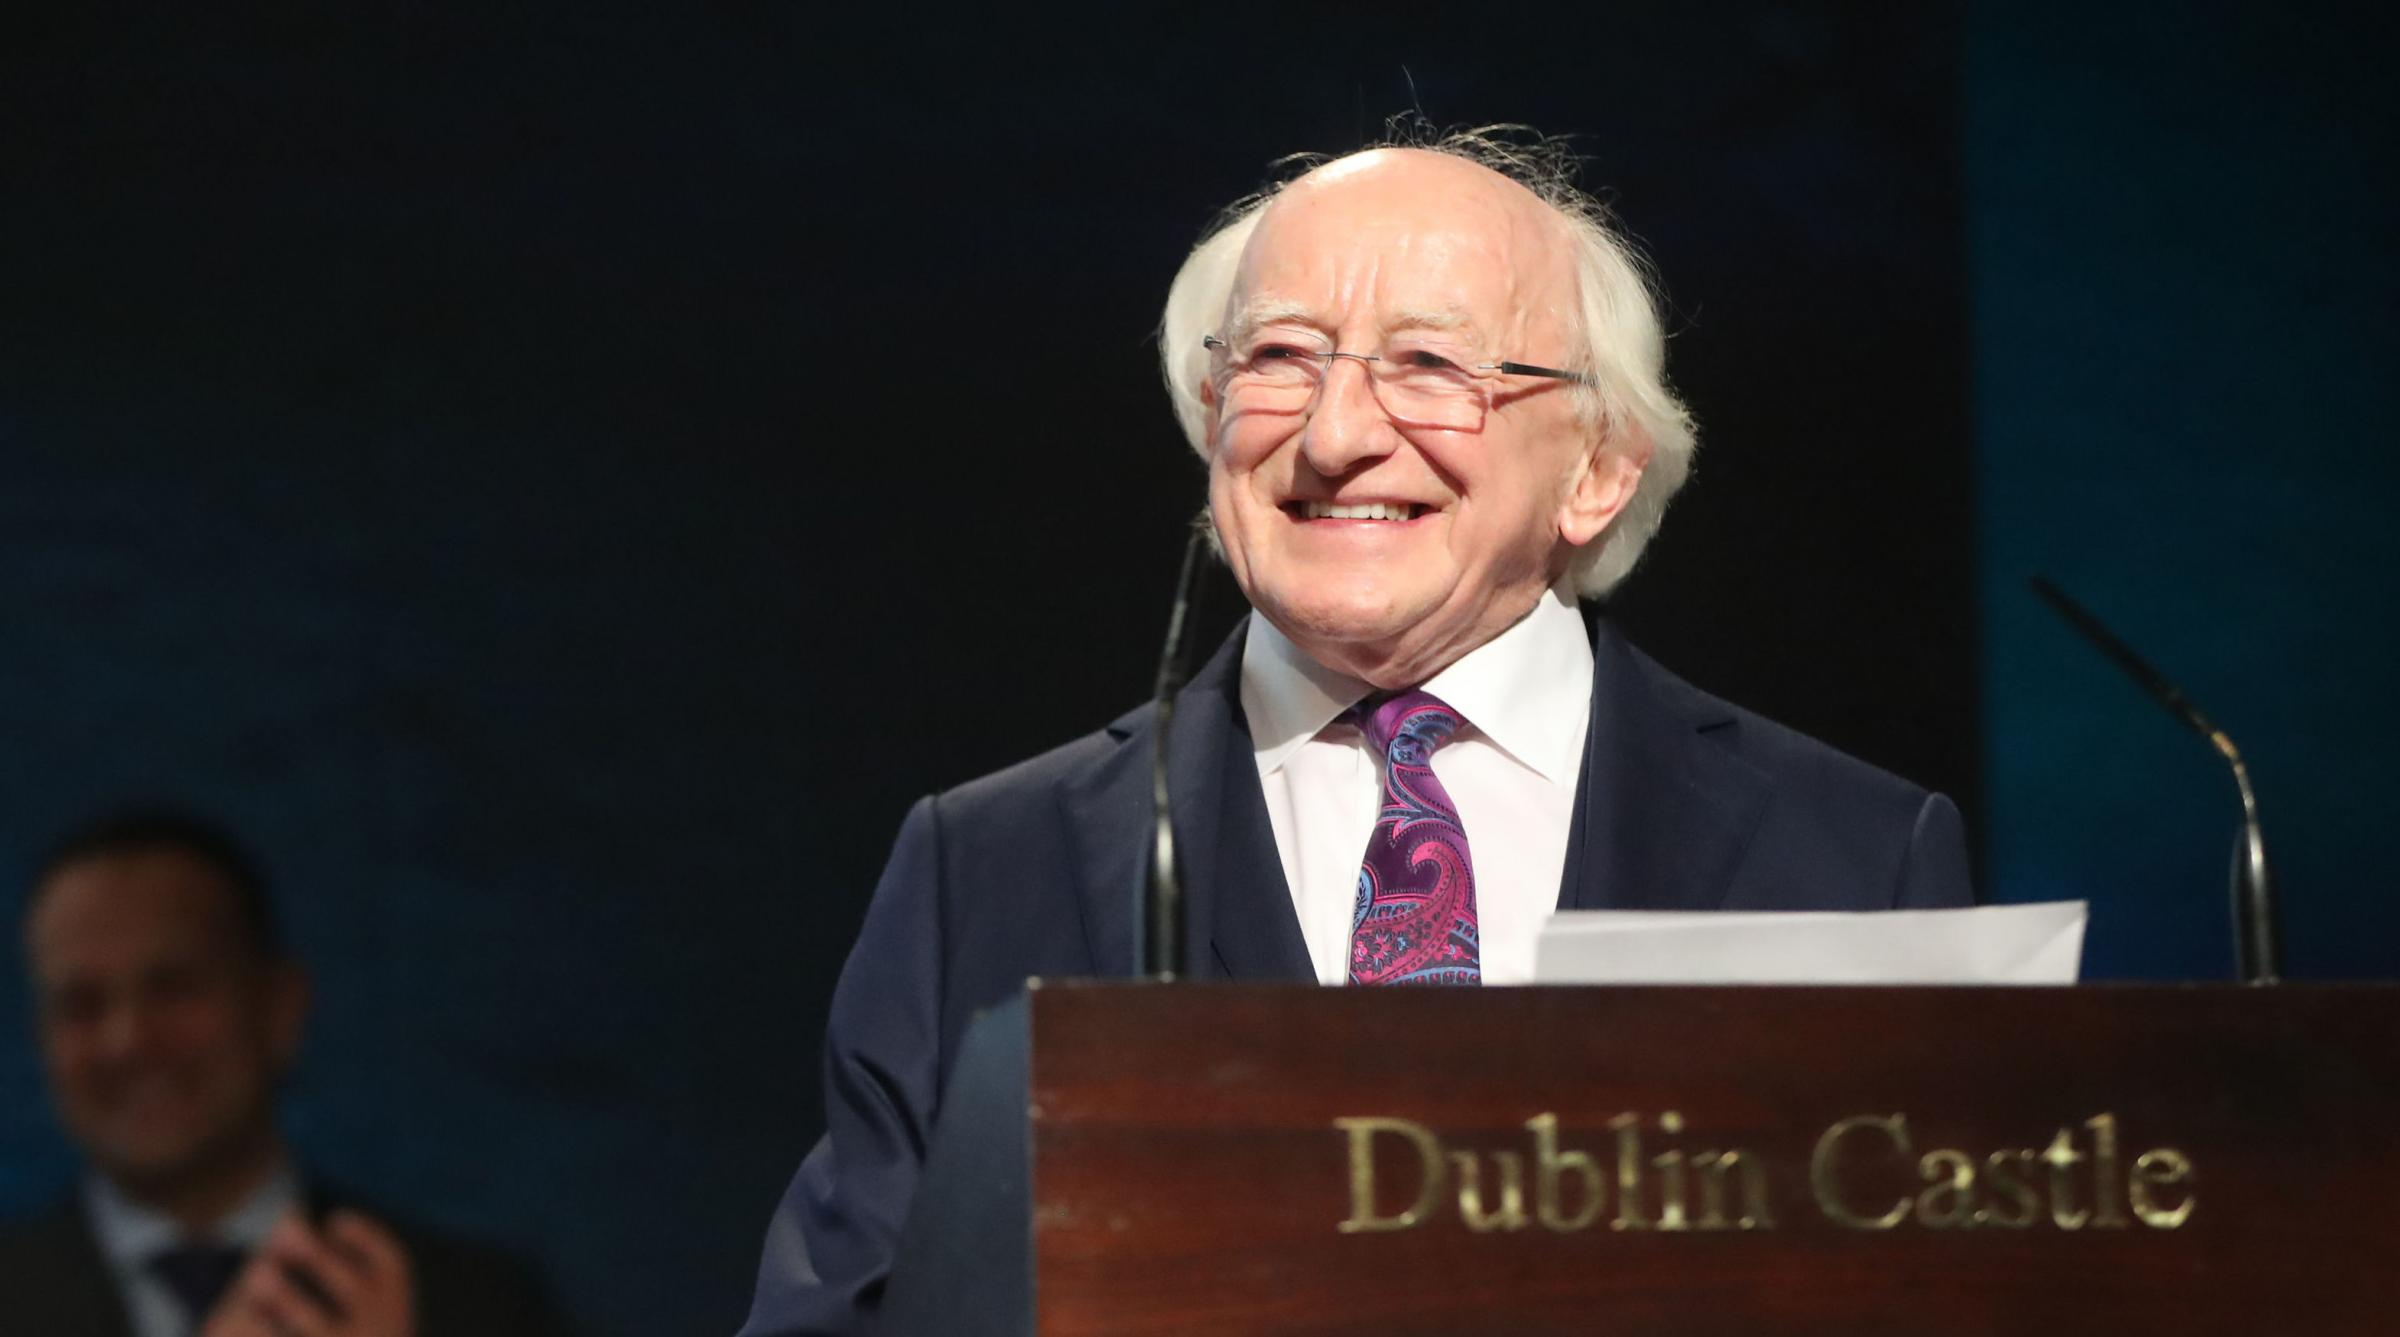 In his speech to the country, Michael D Higgins talked of shared possibilities